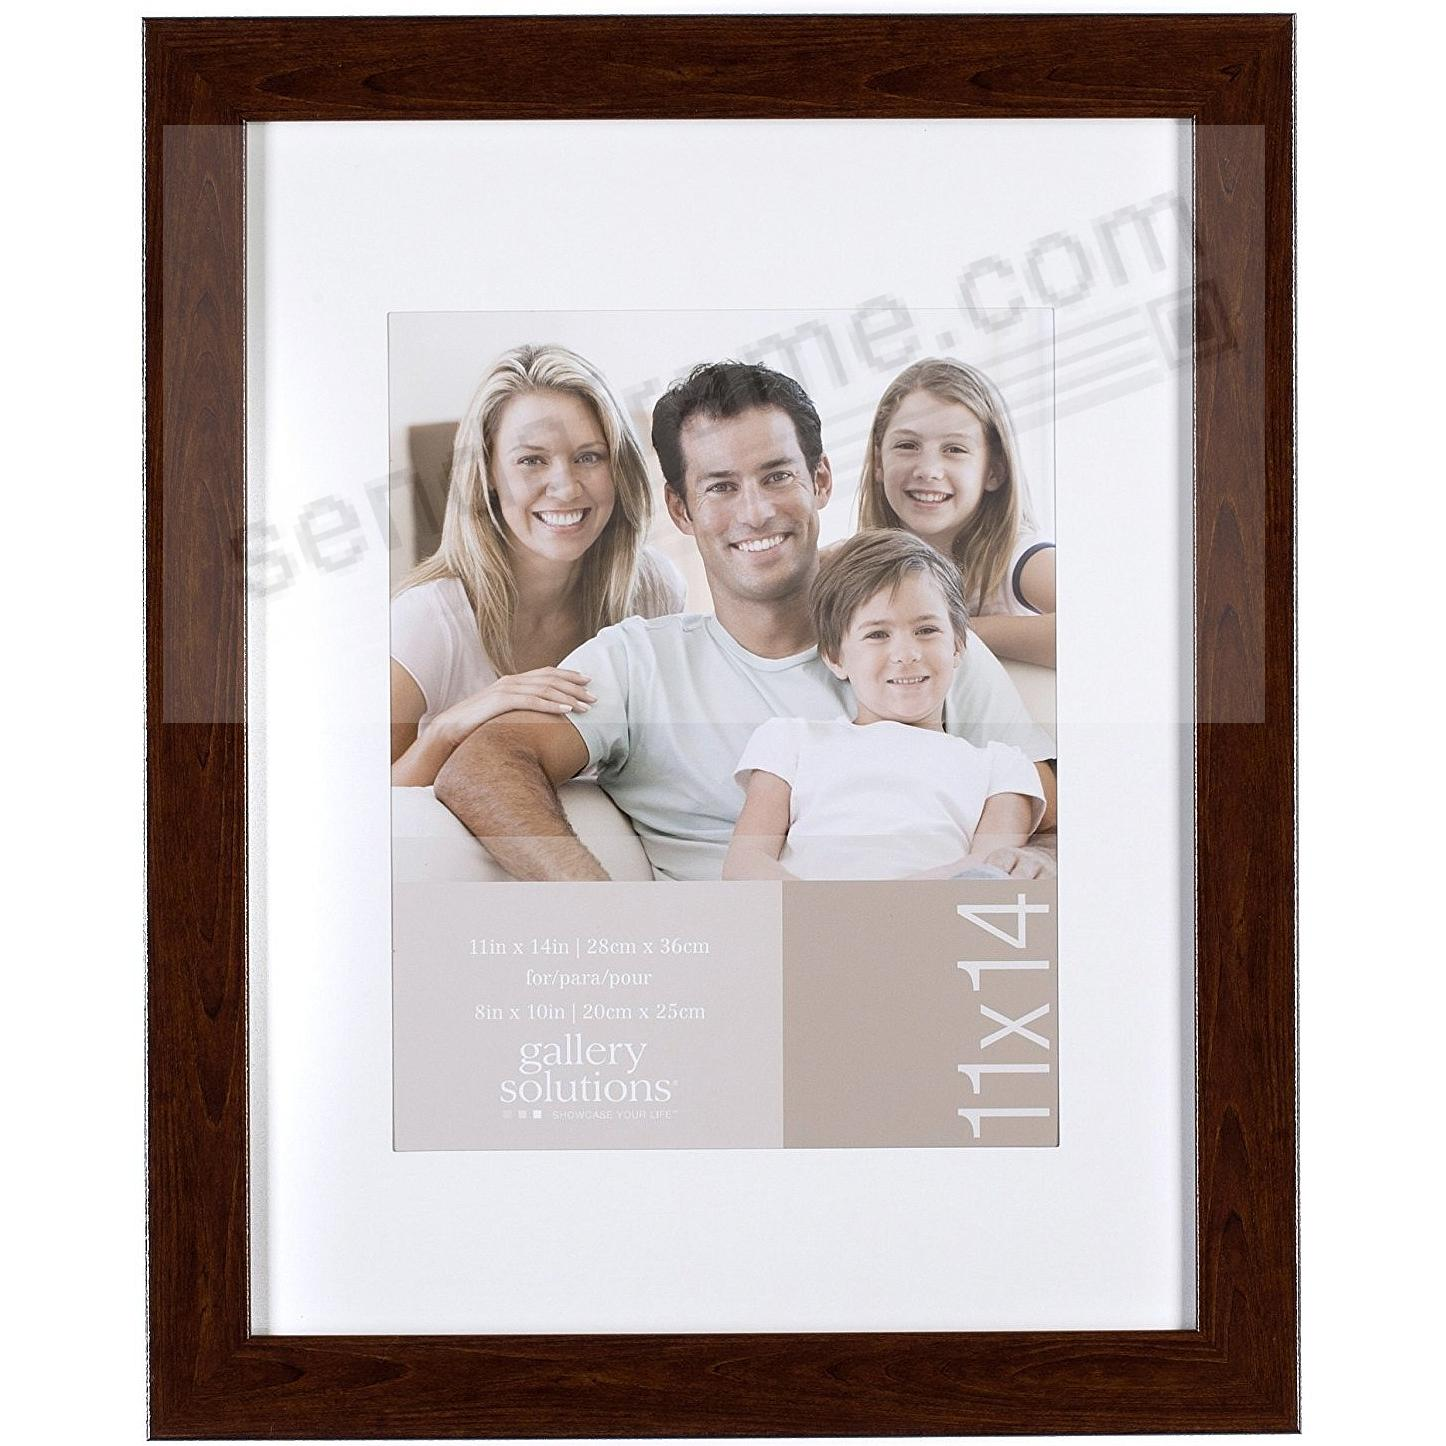 Brown-Ashwood 11x14/8x10 matted frame by Gallery Solutions ...